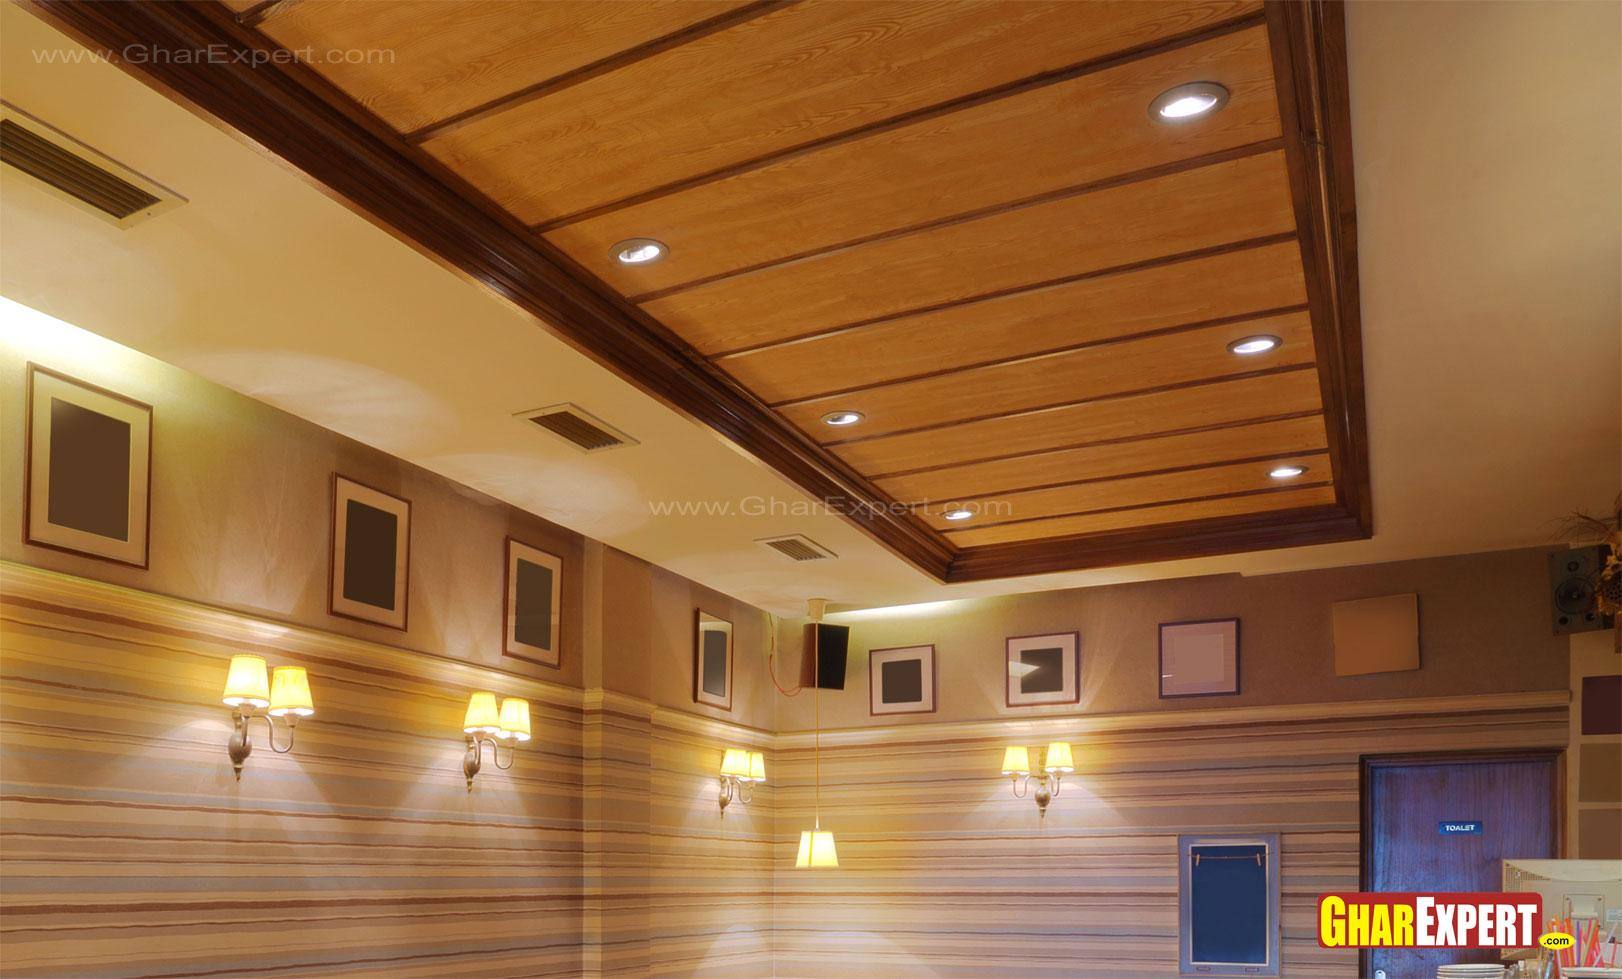 Can You Paint Wood Ceiling